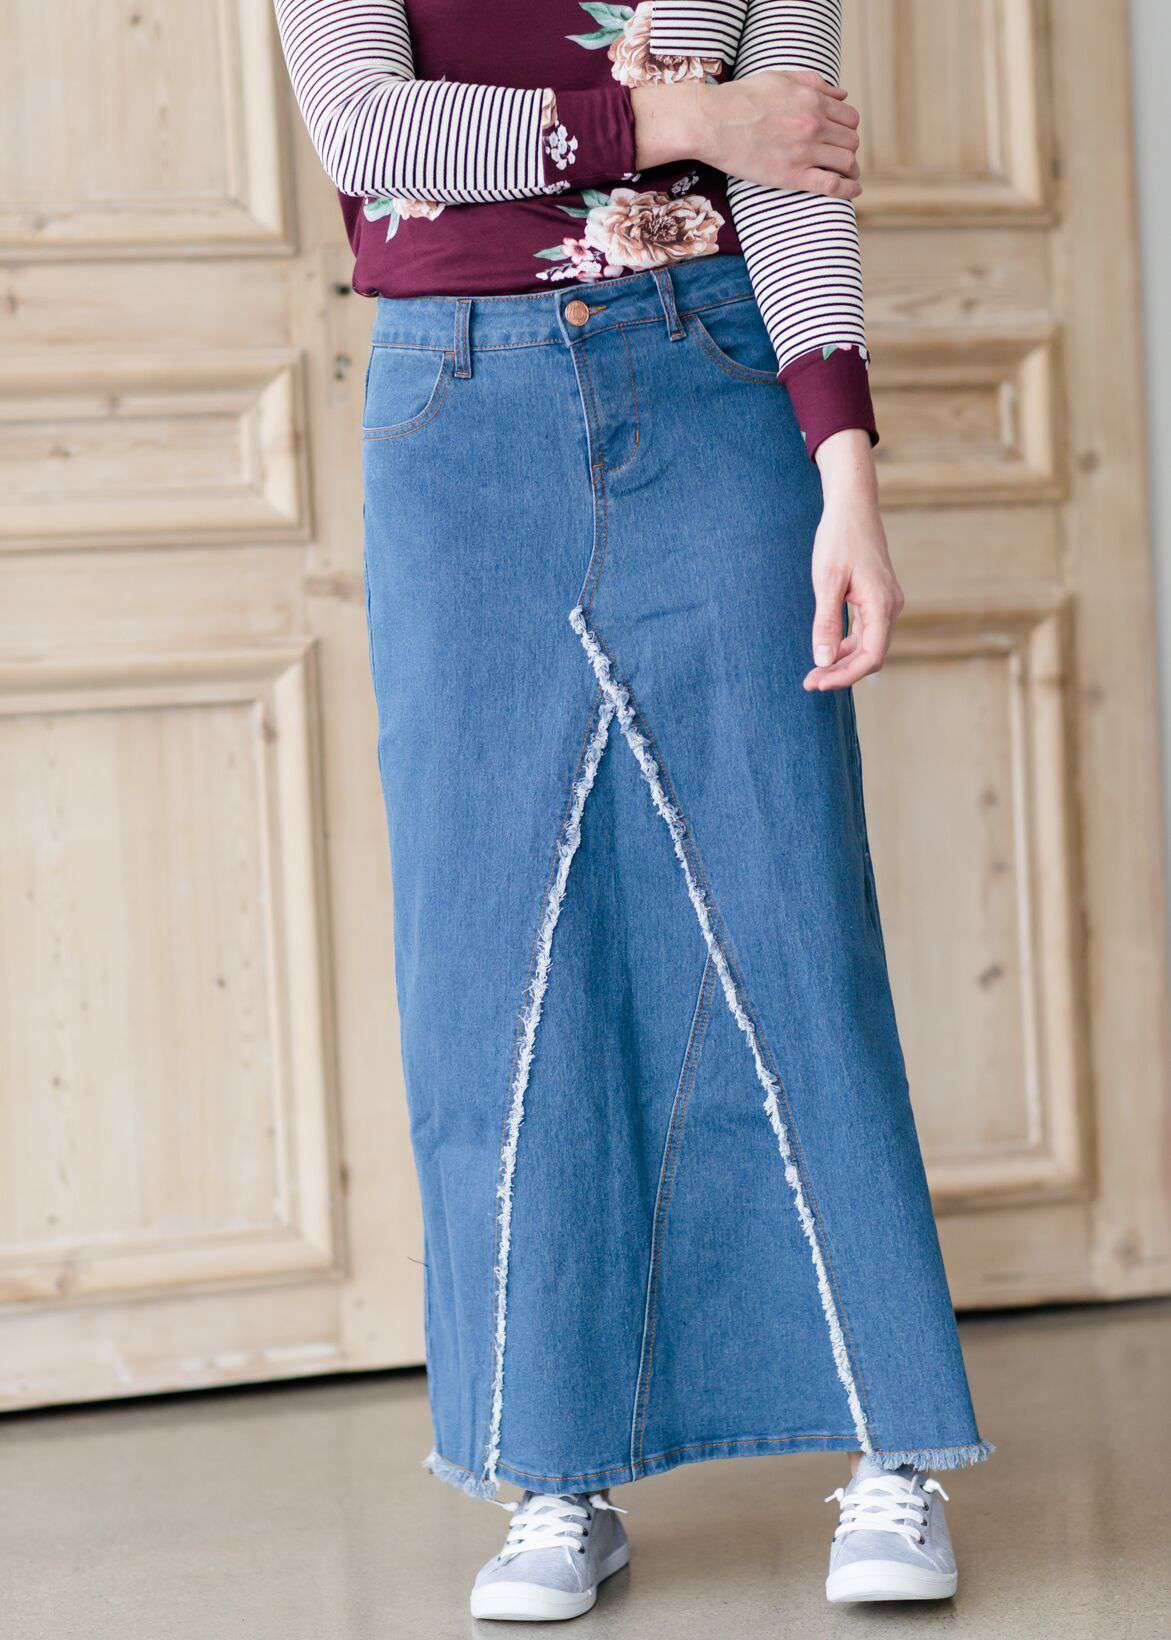 000406c990 woman wearing an a-line modest long denim skirt with fringe detail and no  slit. Share: Share on Facebook Tweet on Twitter Pin on Pinterest